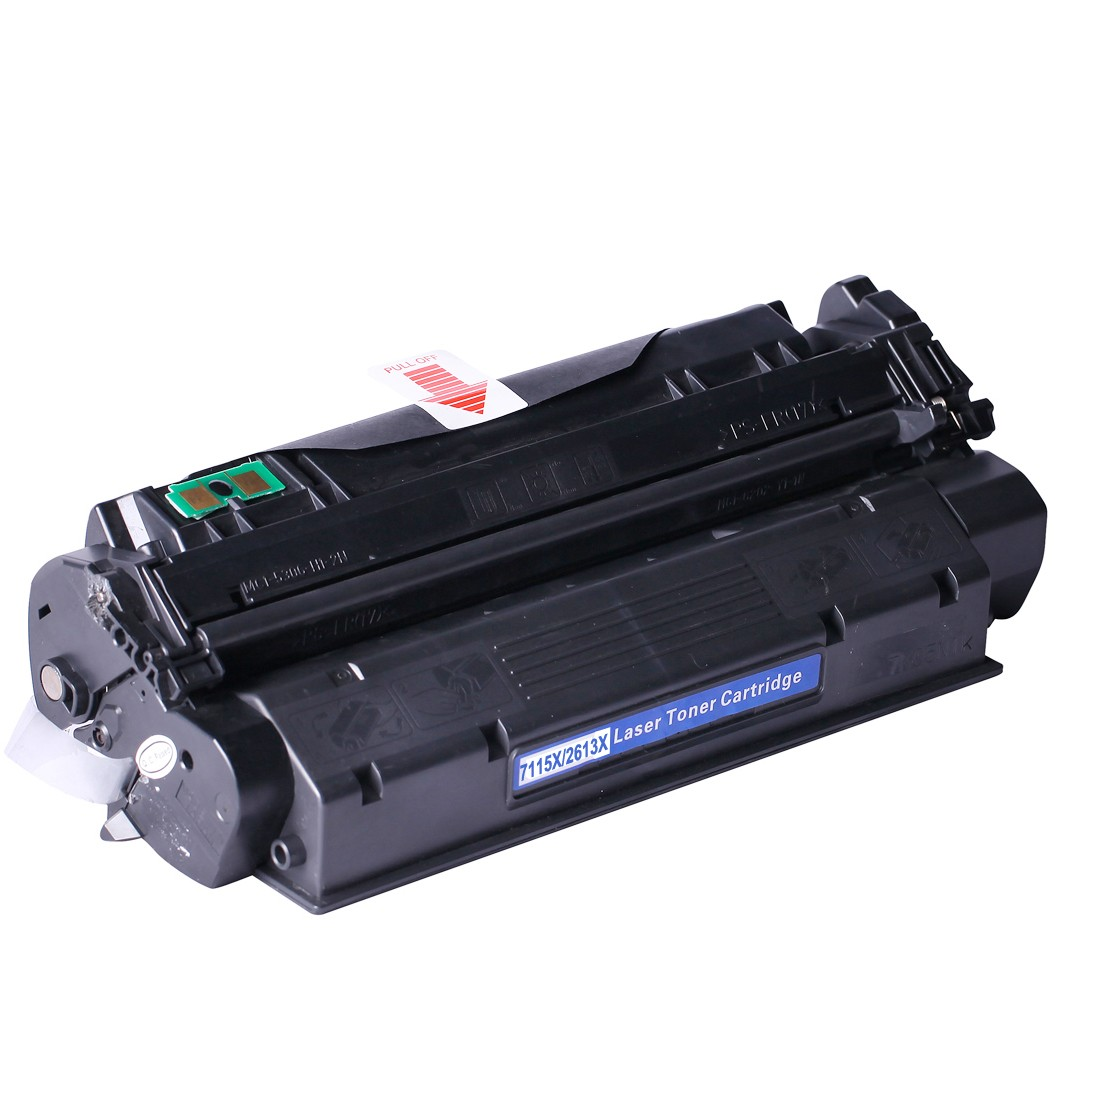 Image of   HP C7115X/2613X Lasertoner Sort, kompatibel (3500 sider)